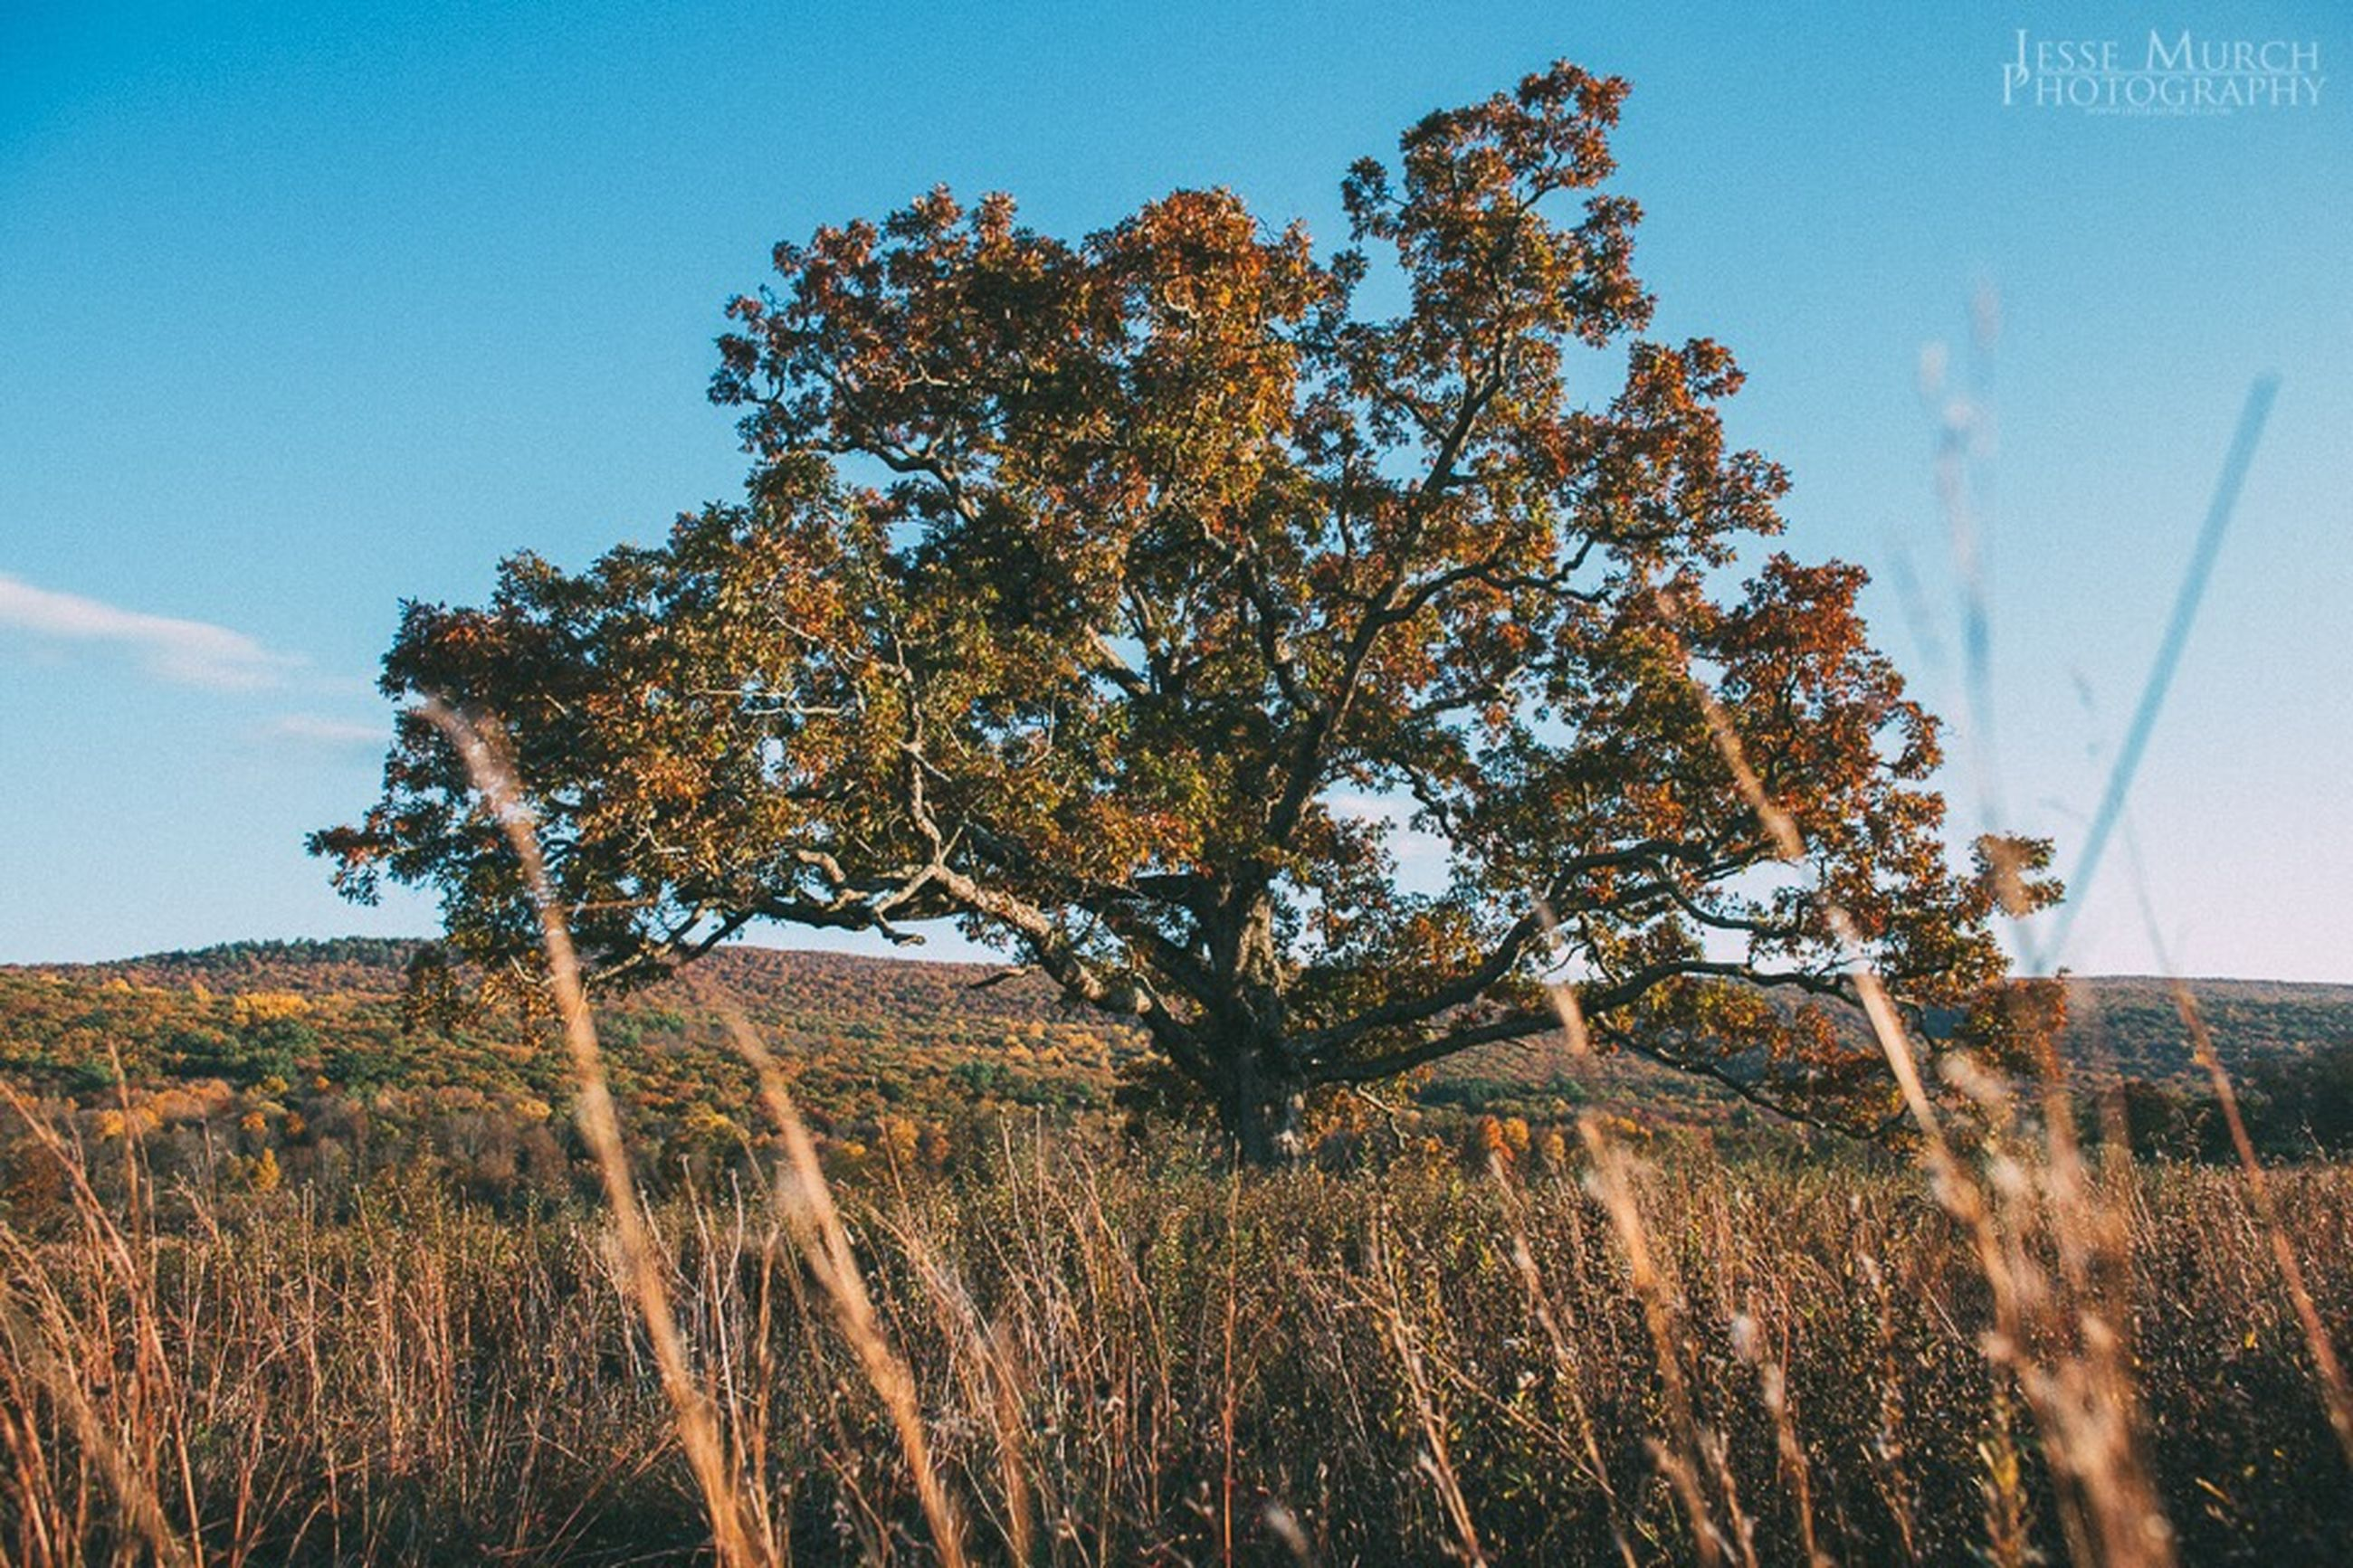 growth, tree, field, tranquility, nature, clear sky, sky, tranquil scene, landscape, plant, beauty in nature, blue, rural scene, scenics, growing, low angle view, grass, agriculture, dry, day